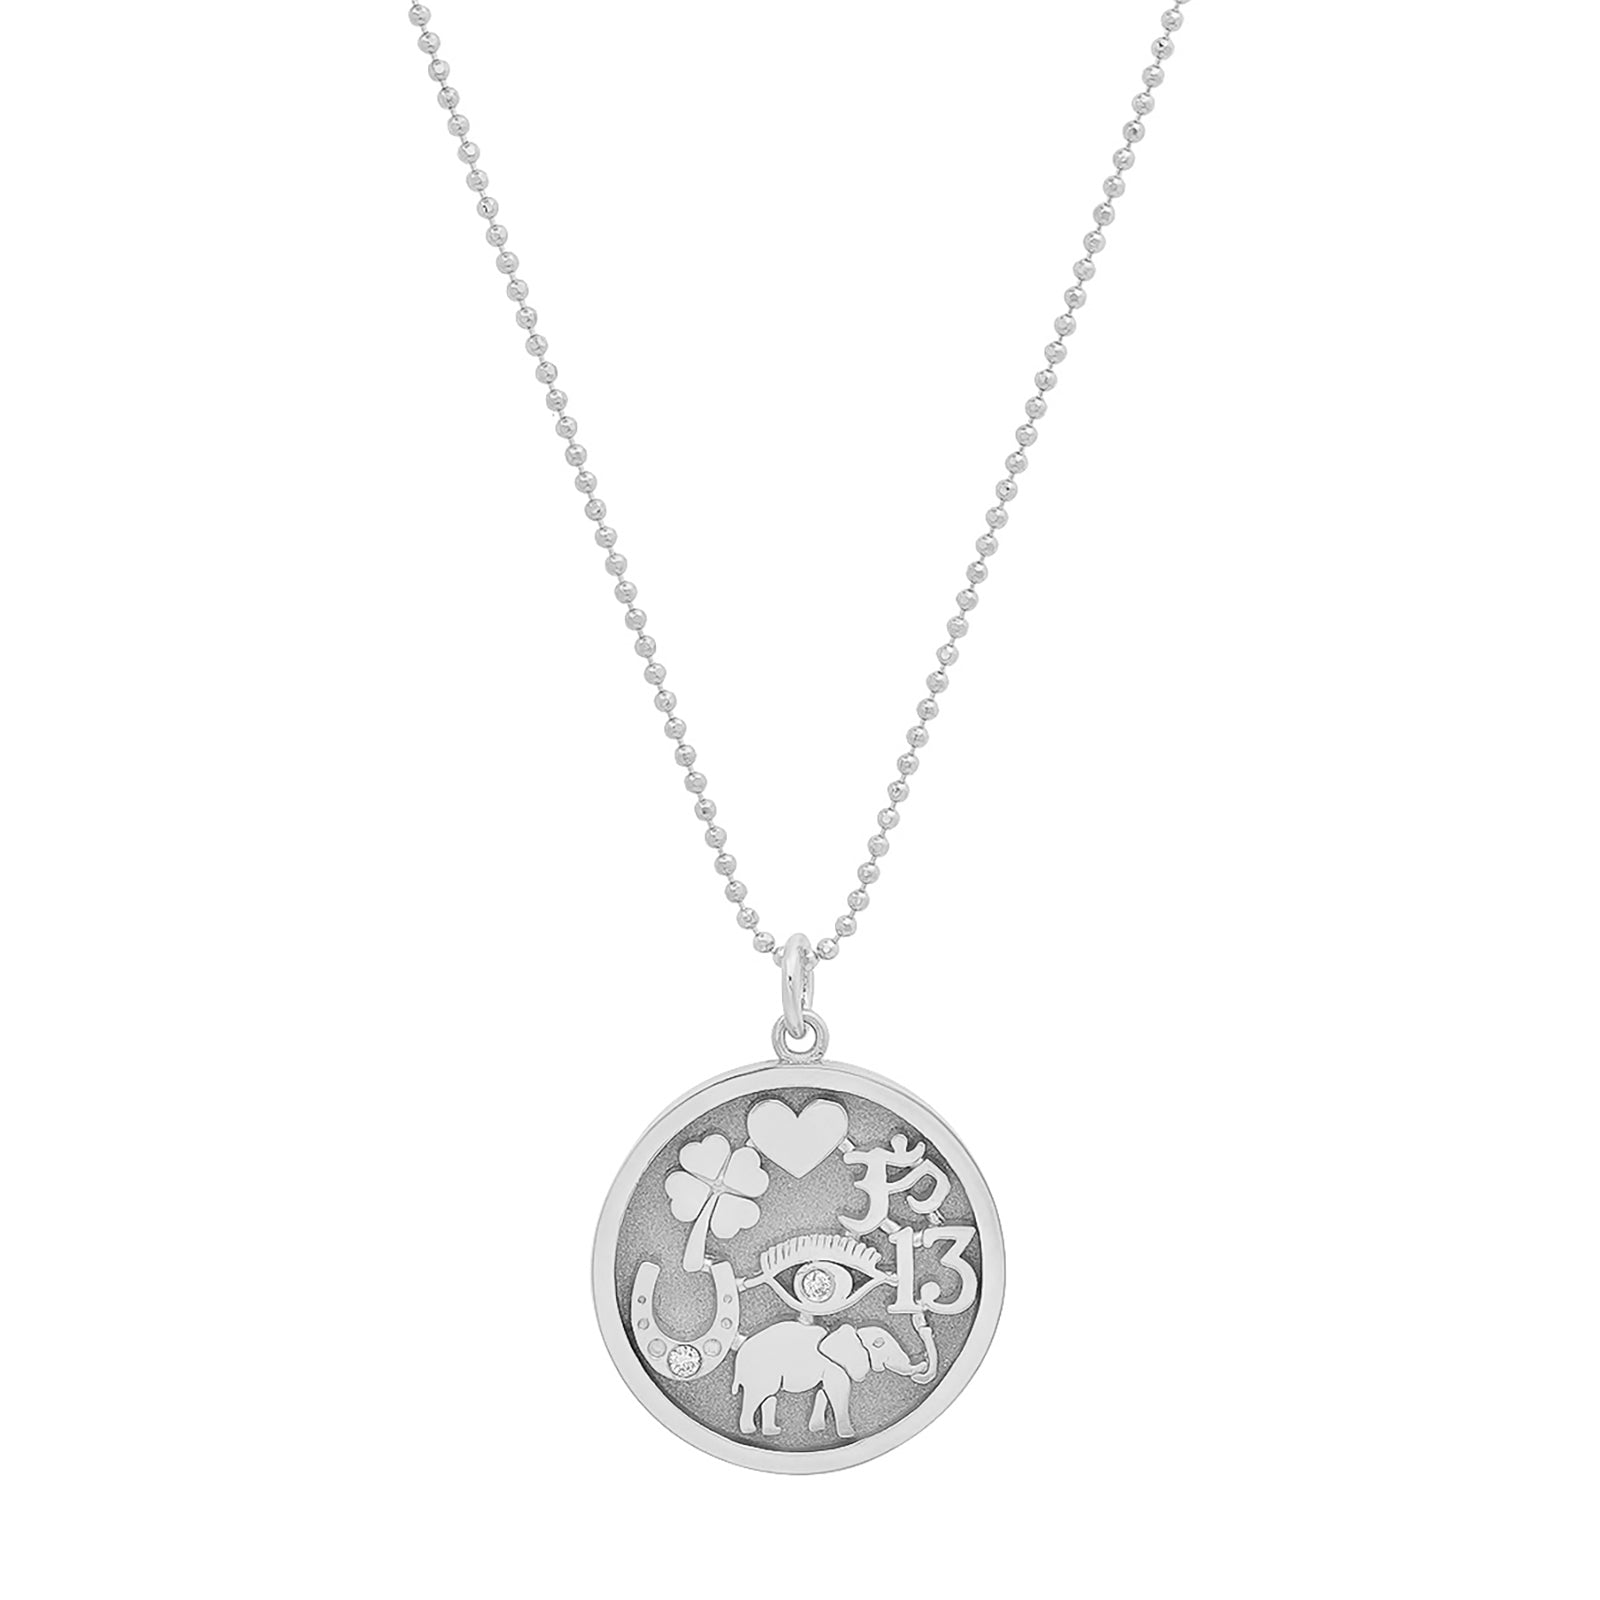 Jennifer Meyer Good Luck Pendant Necklace - White Gold - Necklaces - Broken English Jewelry